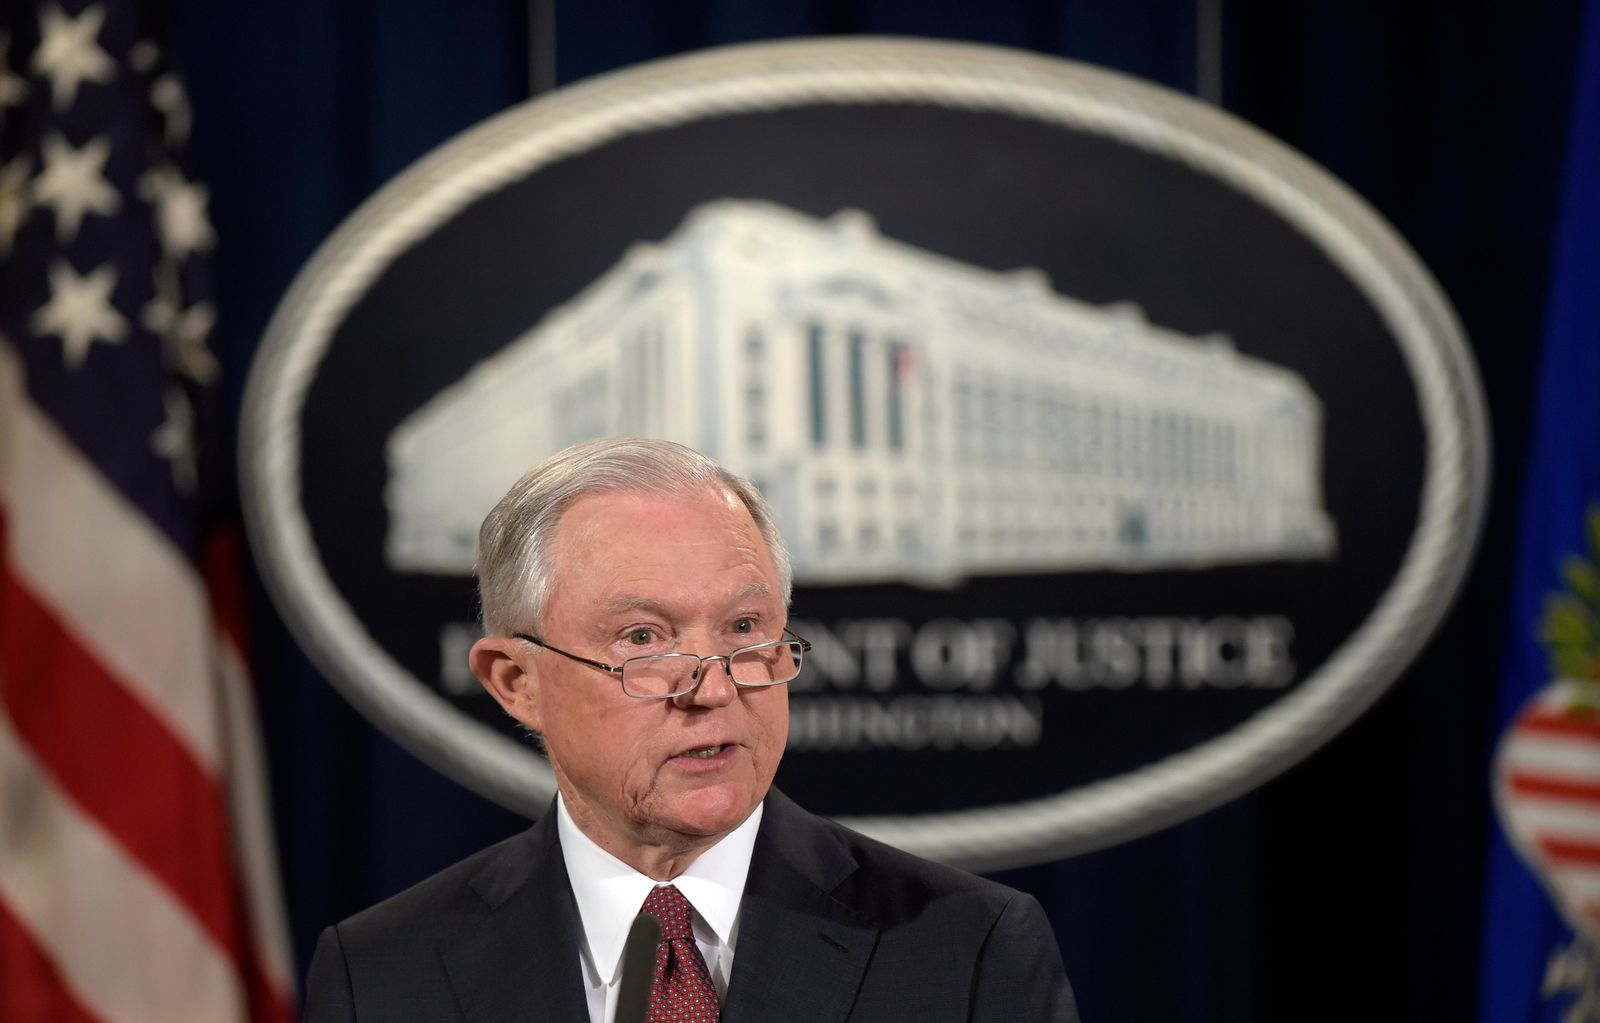 FILE - In this Sept. 5, 2017, file photo, Attorney General Jeff Sessions makes a statement at the Justice Department in Washington on President Barack Obama's Deferred Action for Childhood Arrivals, or DACA program. U.S. District Judge William Alsup on Tuesday, Jan. 9, 2018, granted a request by California and other plaintiffs to prevent President Donald Trump from ending DACA while their lawsuits play out in court. (AP Photo/Susan Walsh, File)